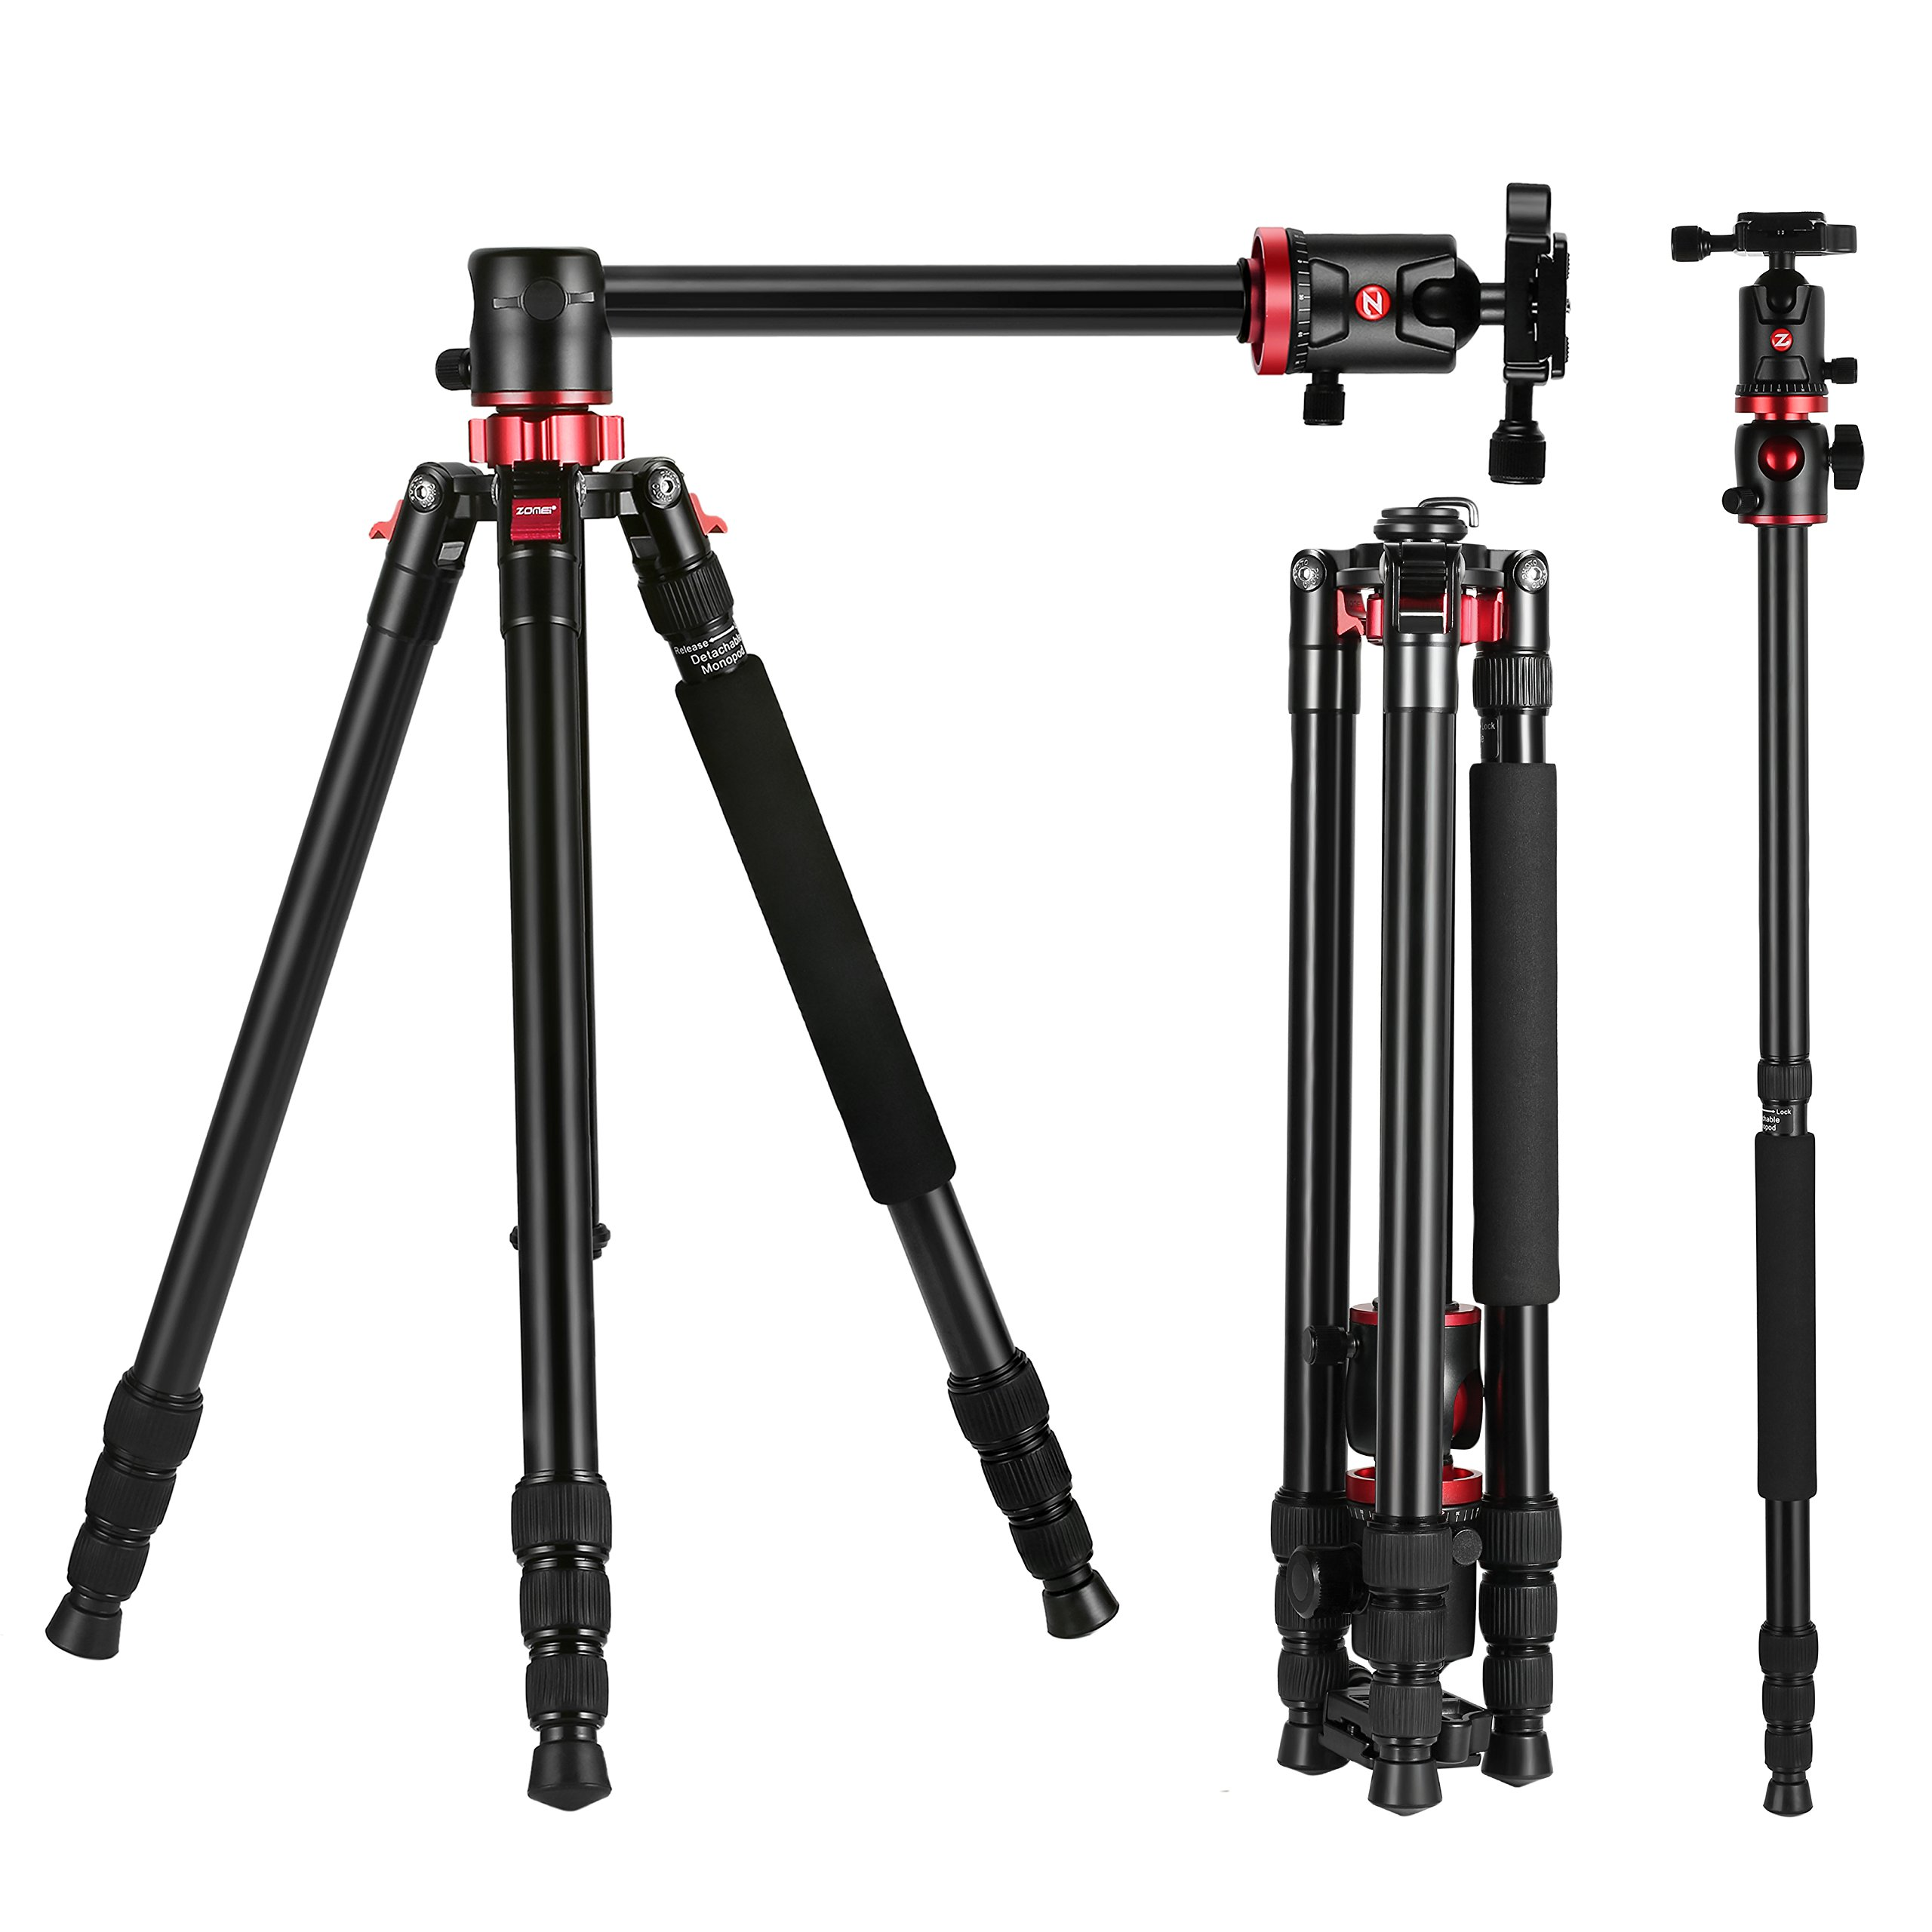 ZOMEI Camera Tripod 72 inch Portable Professioional Aluminium Monopod 4 Section Professional Tripods With 360 Degree Ball Head QR Plate for Canon Nikon Dslr DV Scope camcorder and Projector by ZOMEI